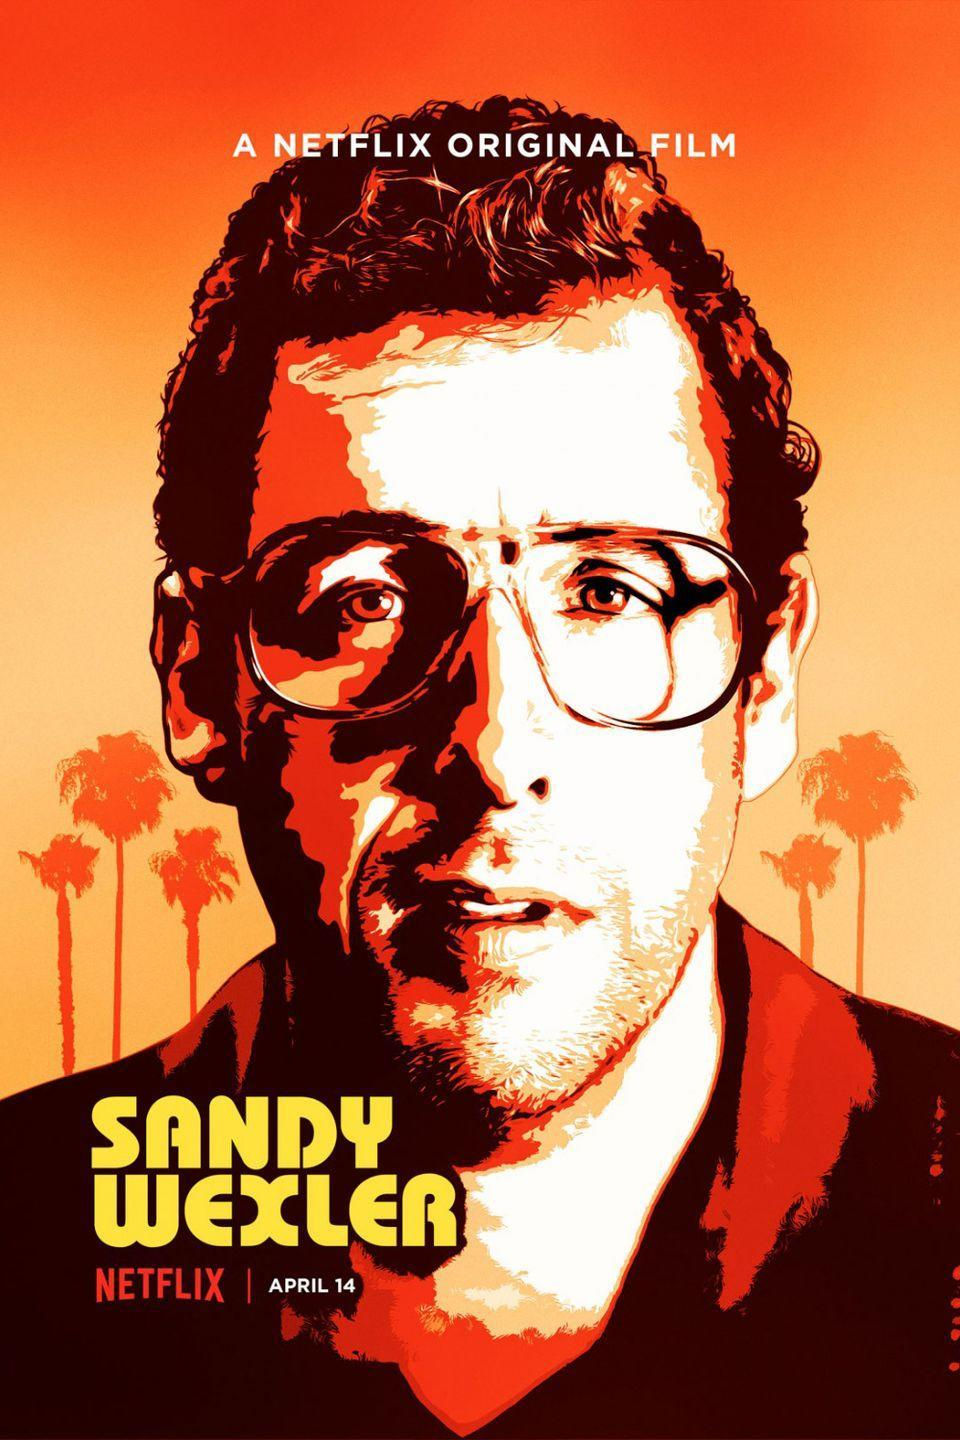 <p><strong>Role: </strong>Sandy Wexler </p><p>This is basically one entire inside joke about Sandler's real-life manager Sandy Wernick that approximately .0000000000000000000000001 percent of the world's population could possibly find funny.</p>